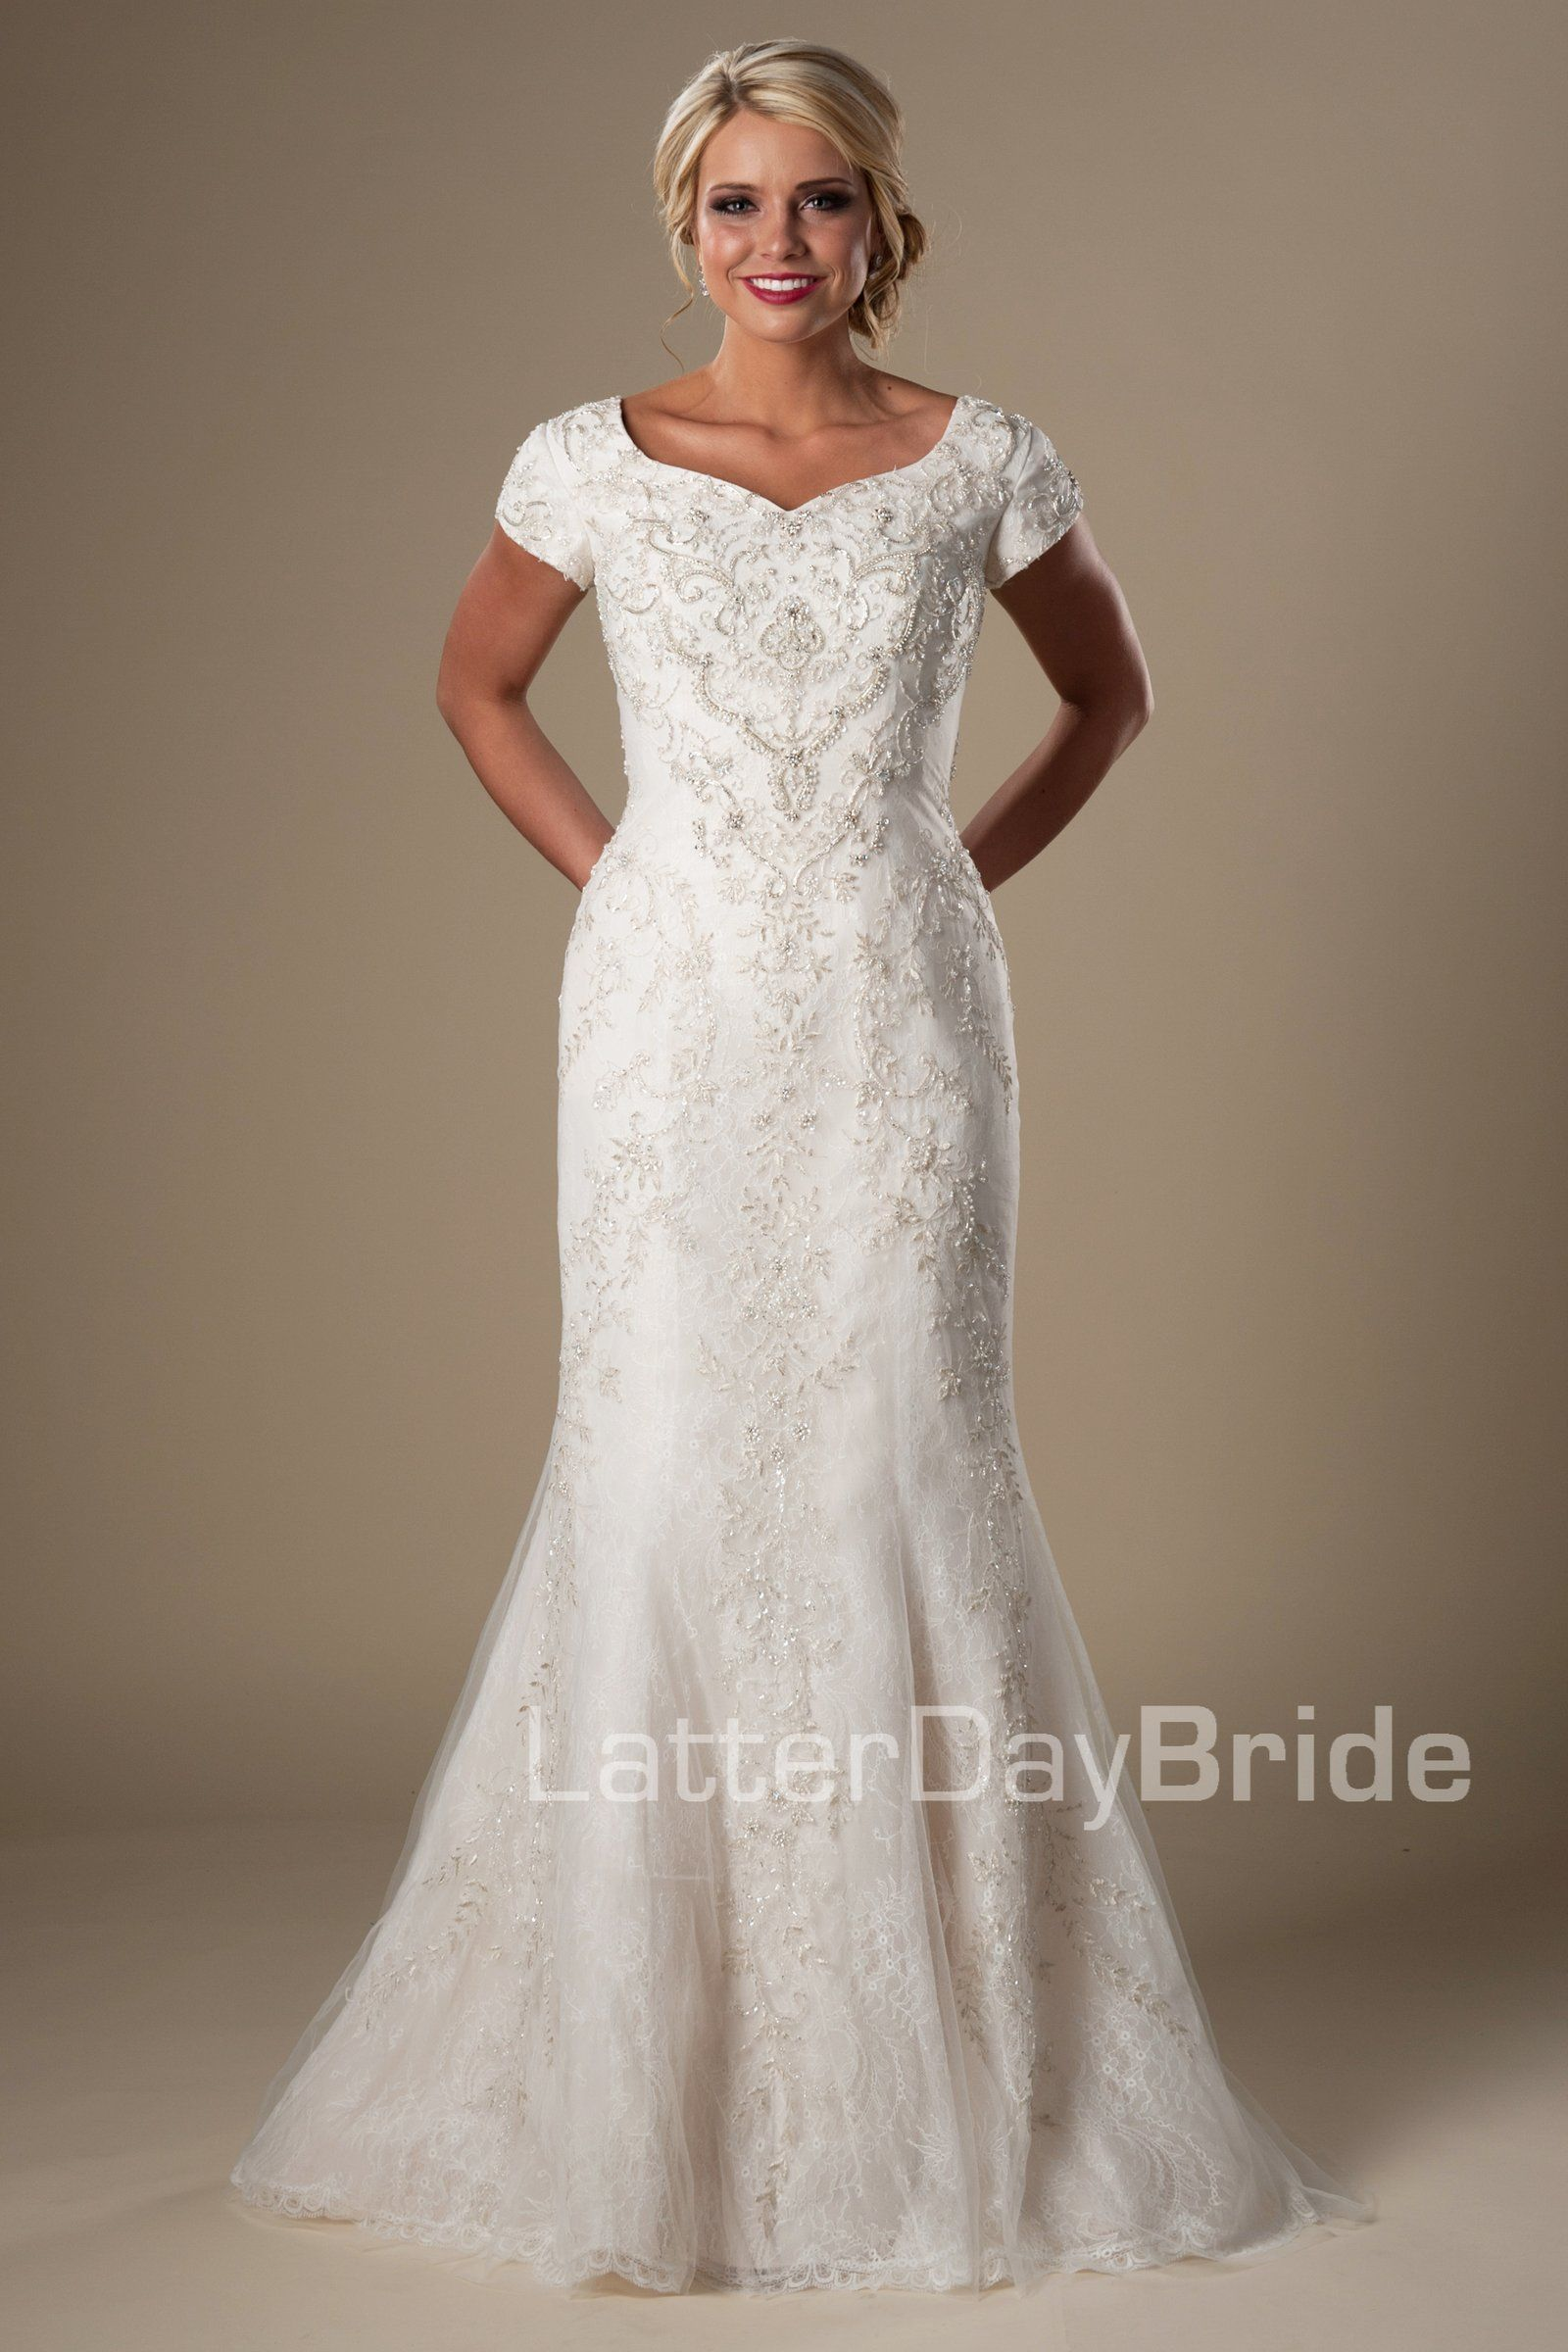 08aba217f92e Fit & flare modest bridal gown, style Eliason, is part of the LatterDayBride  Collection, a Utah wedding dresses.